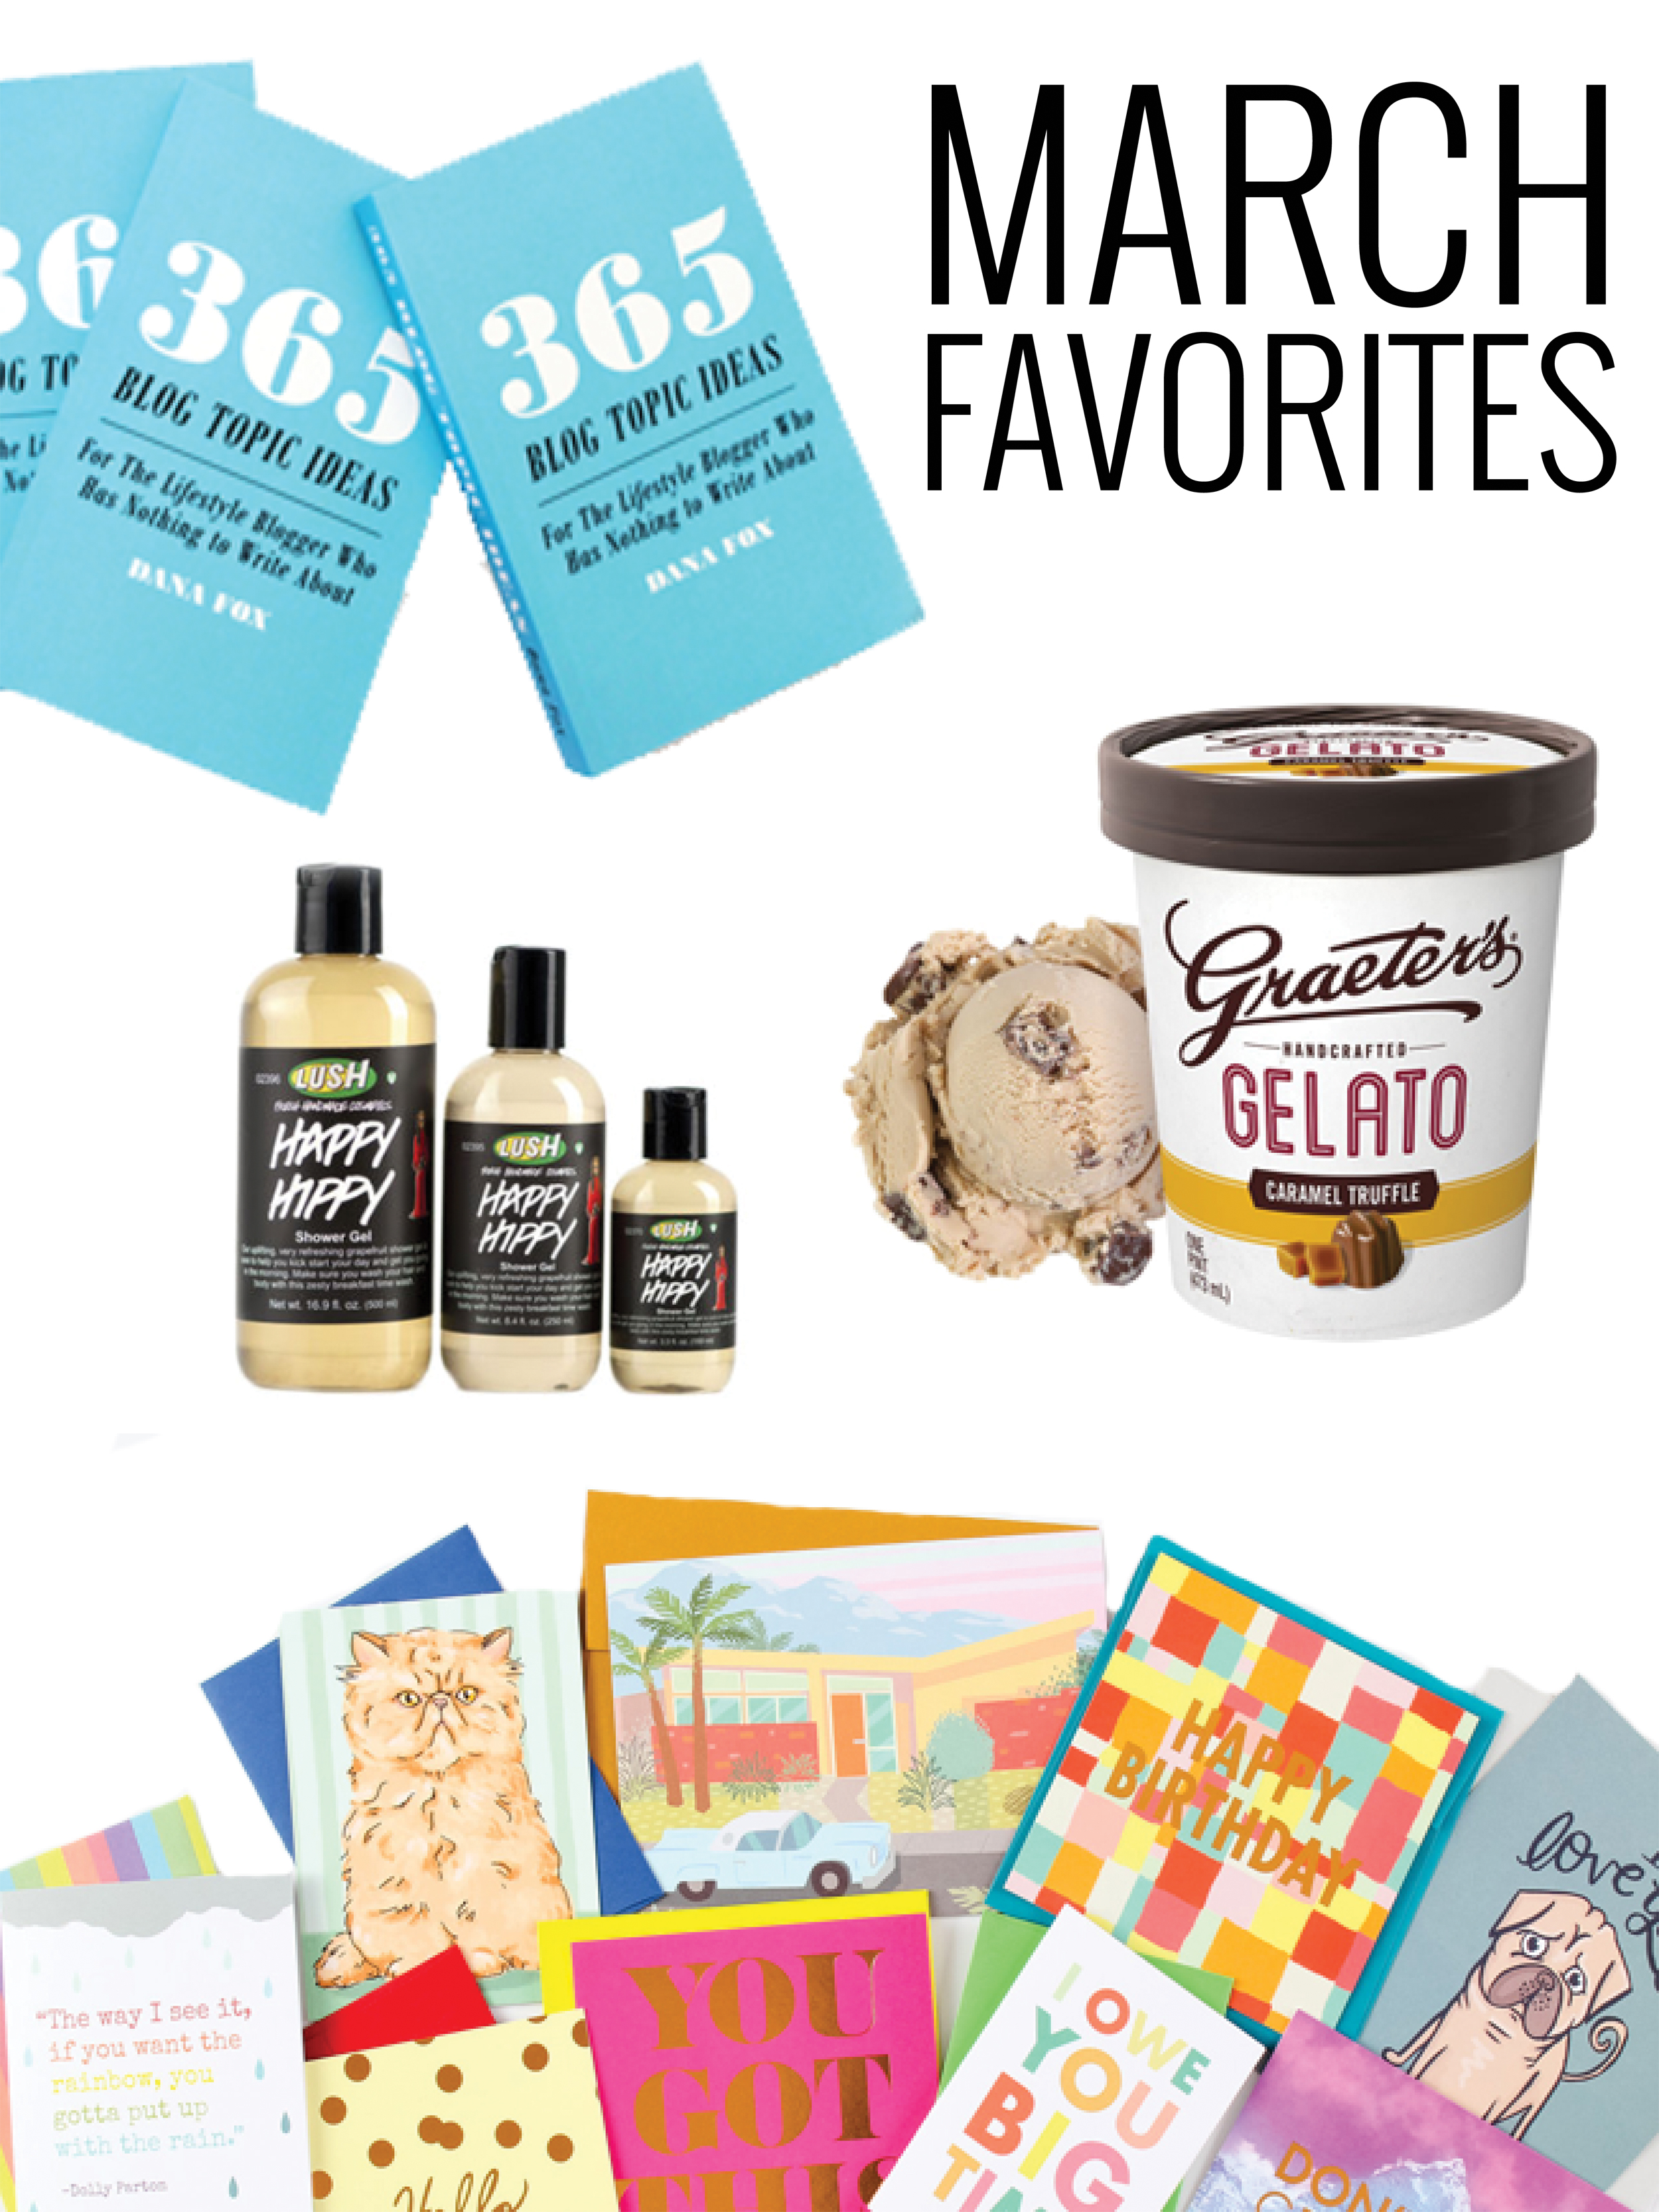 March Beauty + Lifestyle Favorites www.chelceytate.com